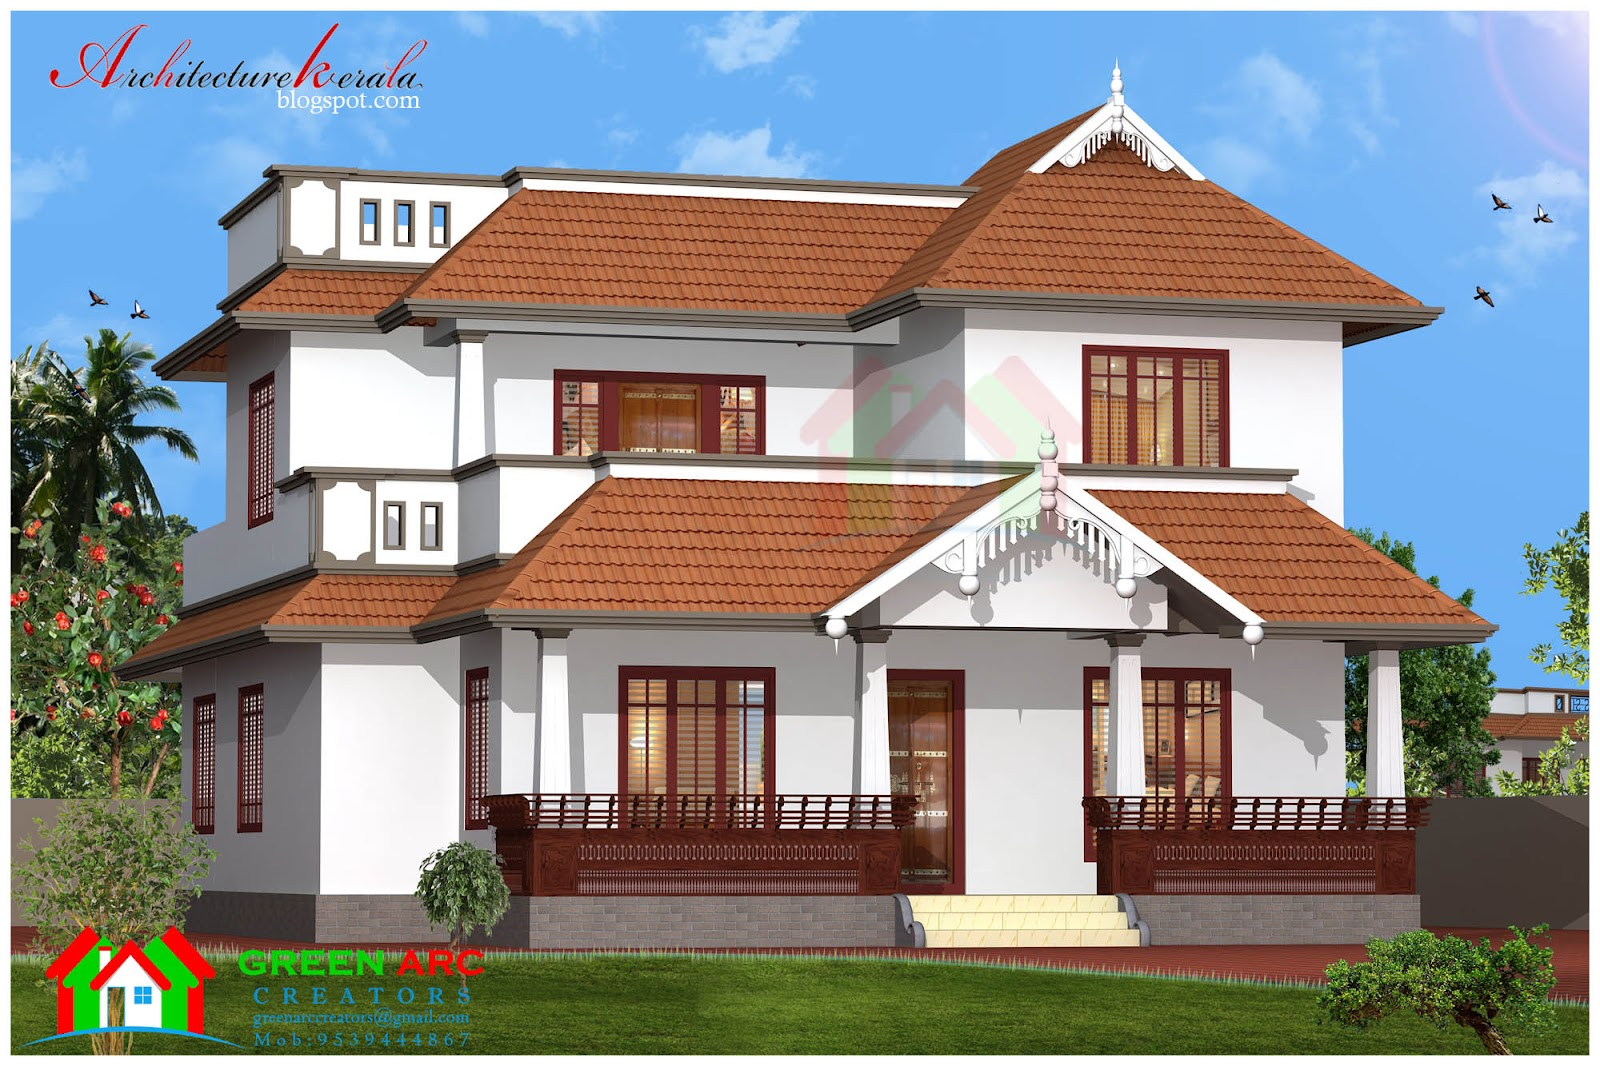 Architecture kerala traditional style kerala house plan for Kerala style house plans with photos